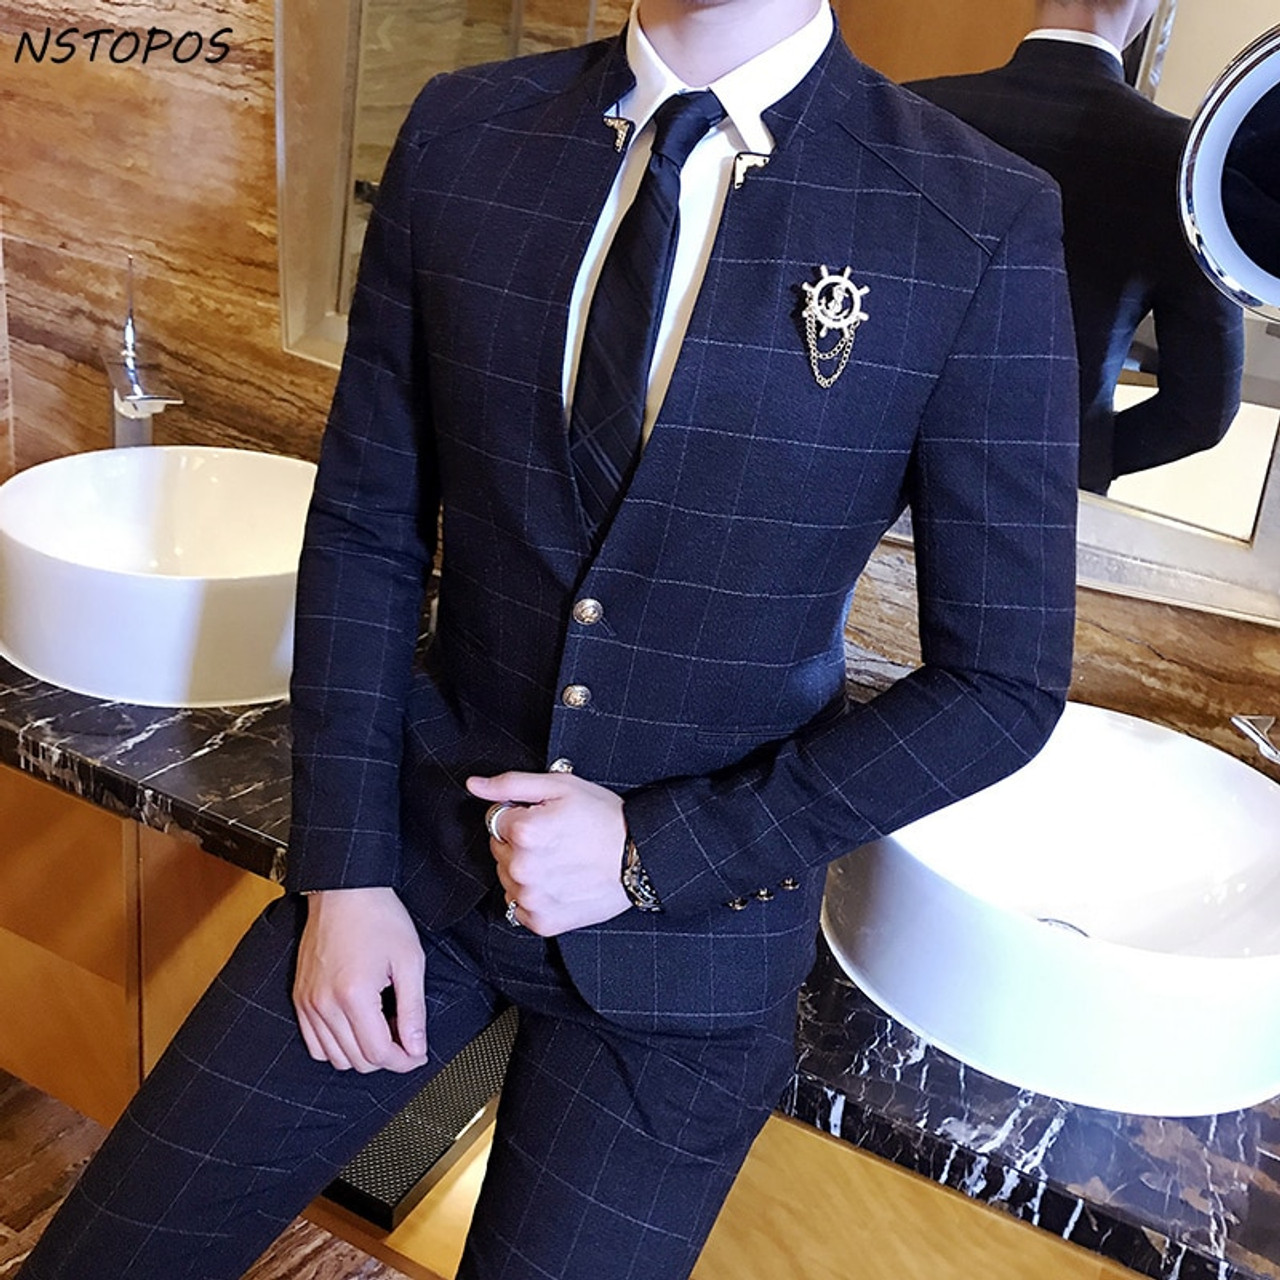 f2ec5feb3fed Mandarin Collar Suit Plaid Check Suit Male 2017 Chinese Collar Suit  Business Casual Terno Slim Fit ...